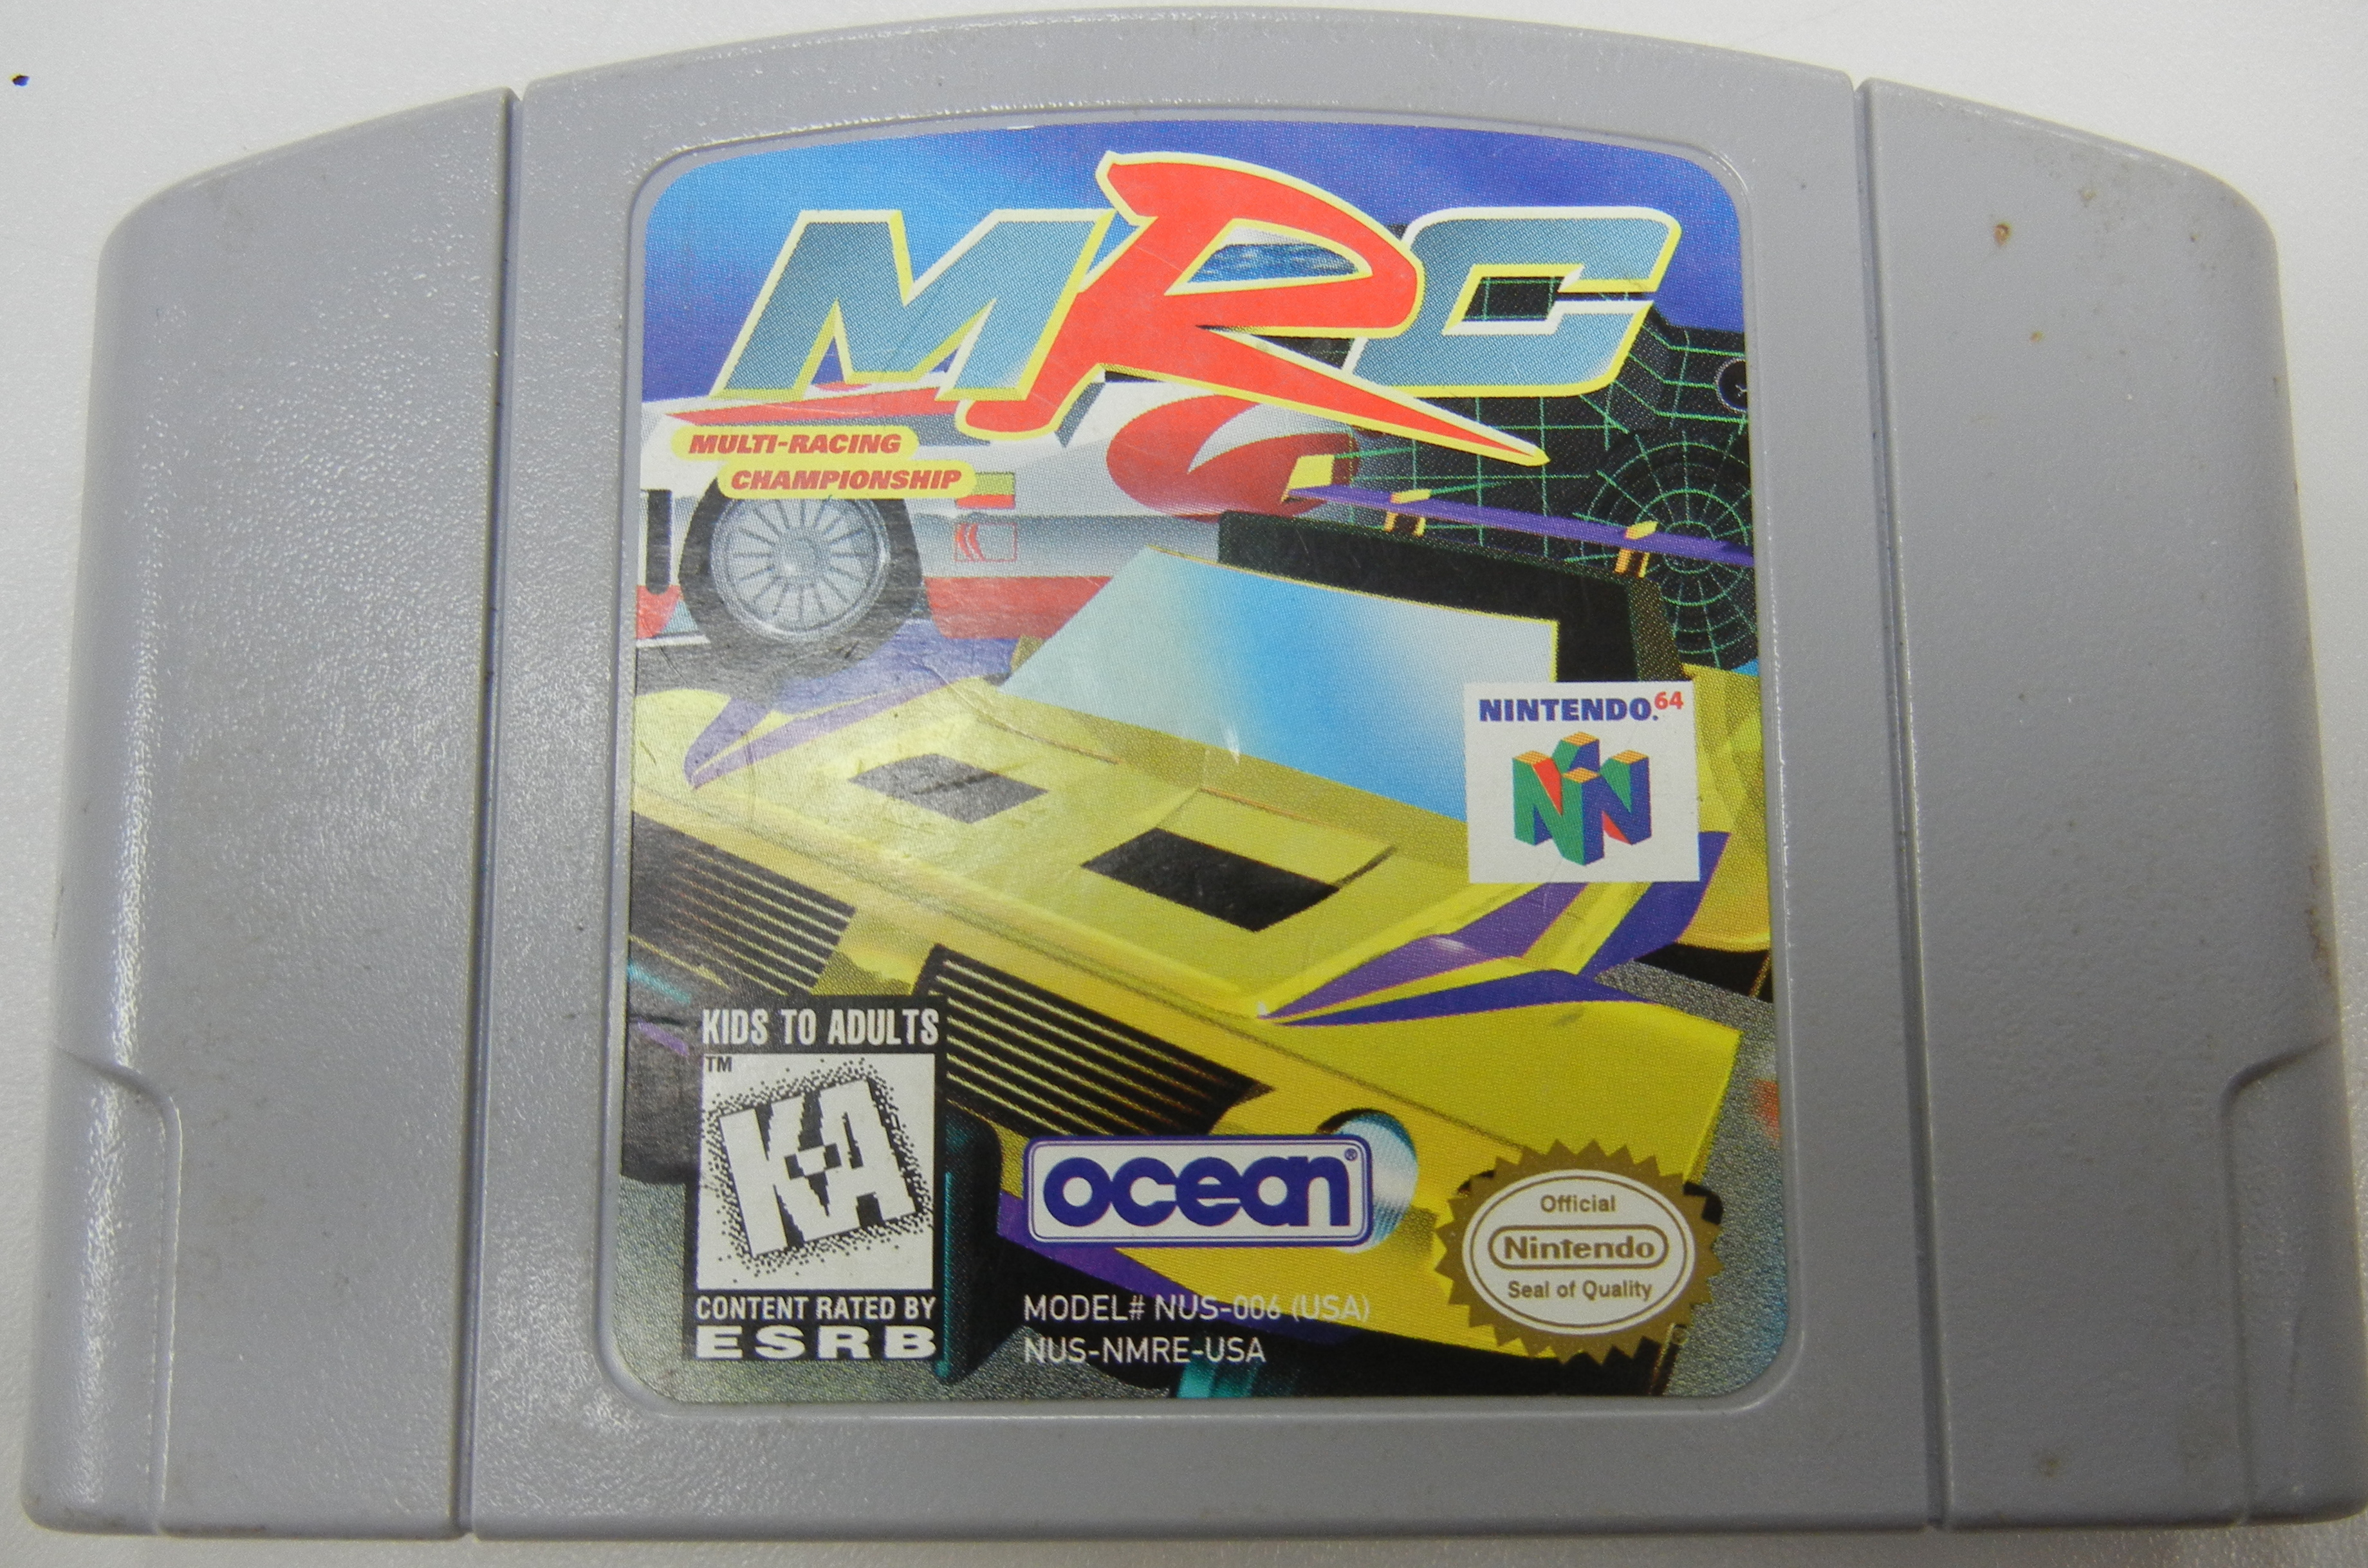 MRC (MULTI-RACING CHAMPIONSHIP) NINTENDO 64 GAME